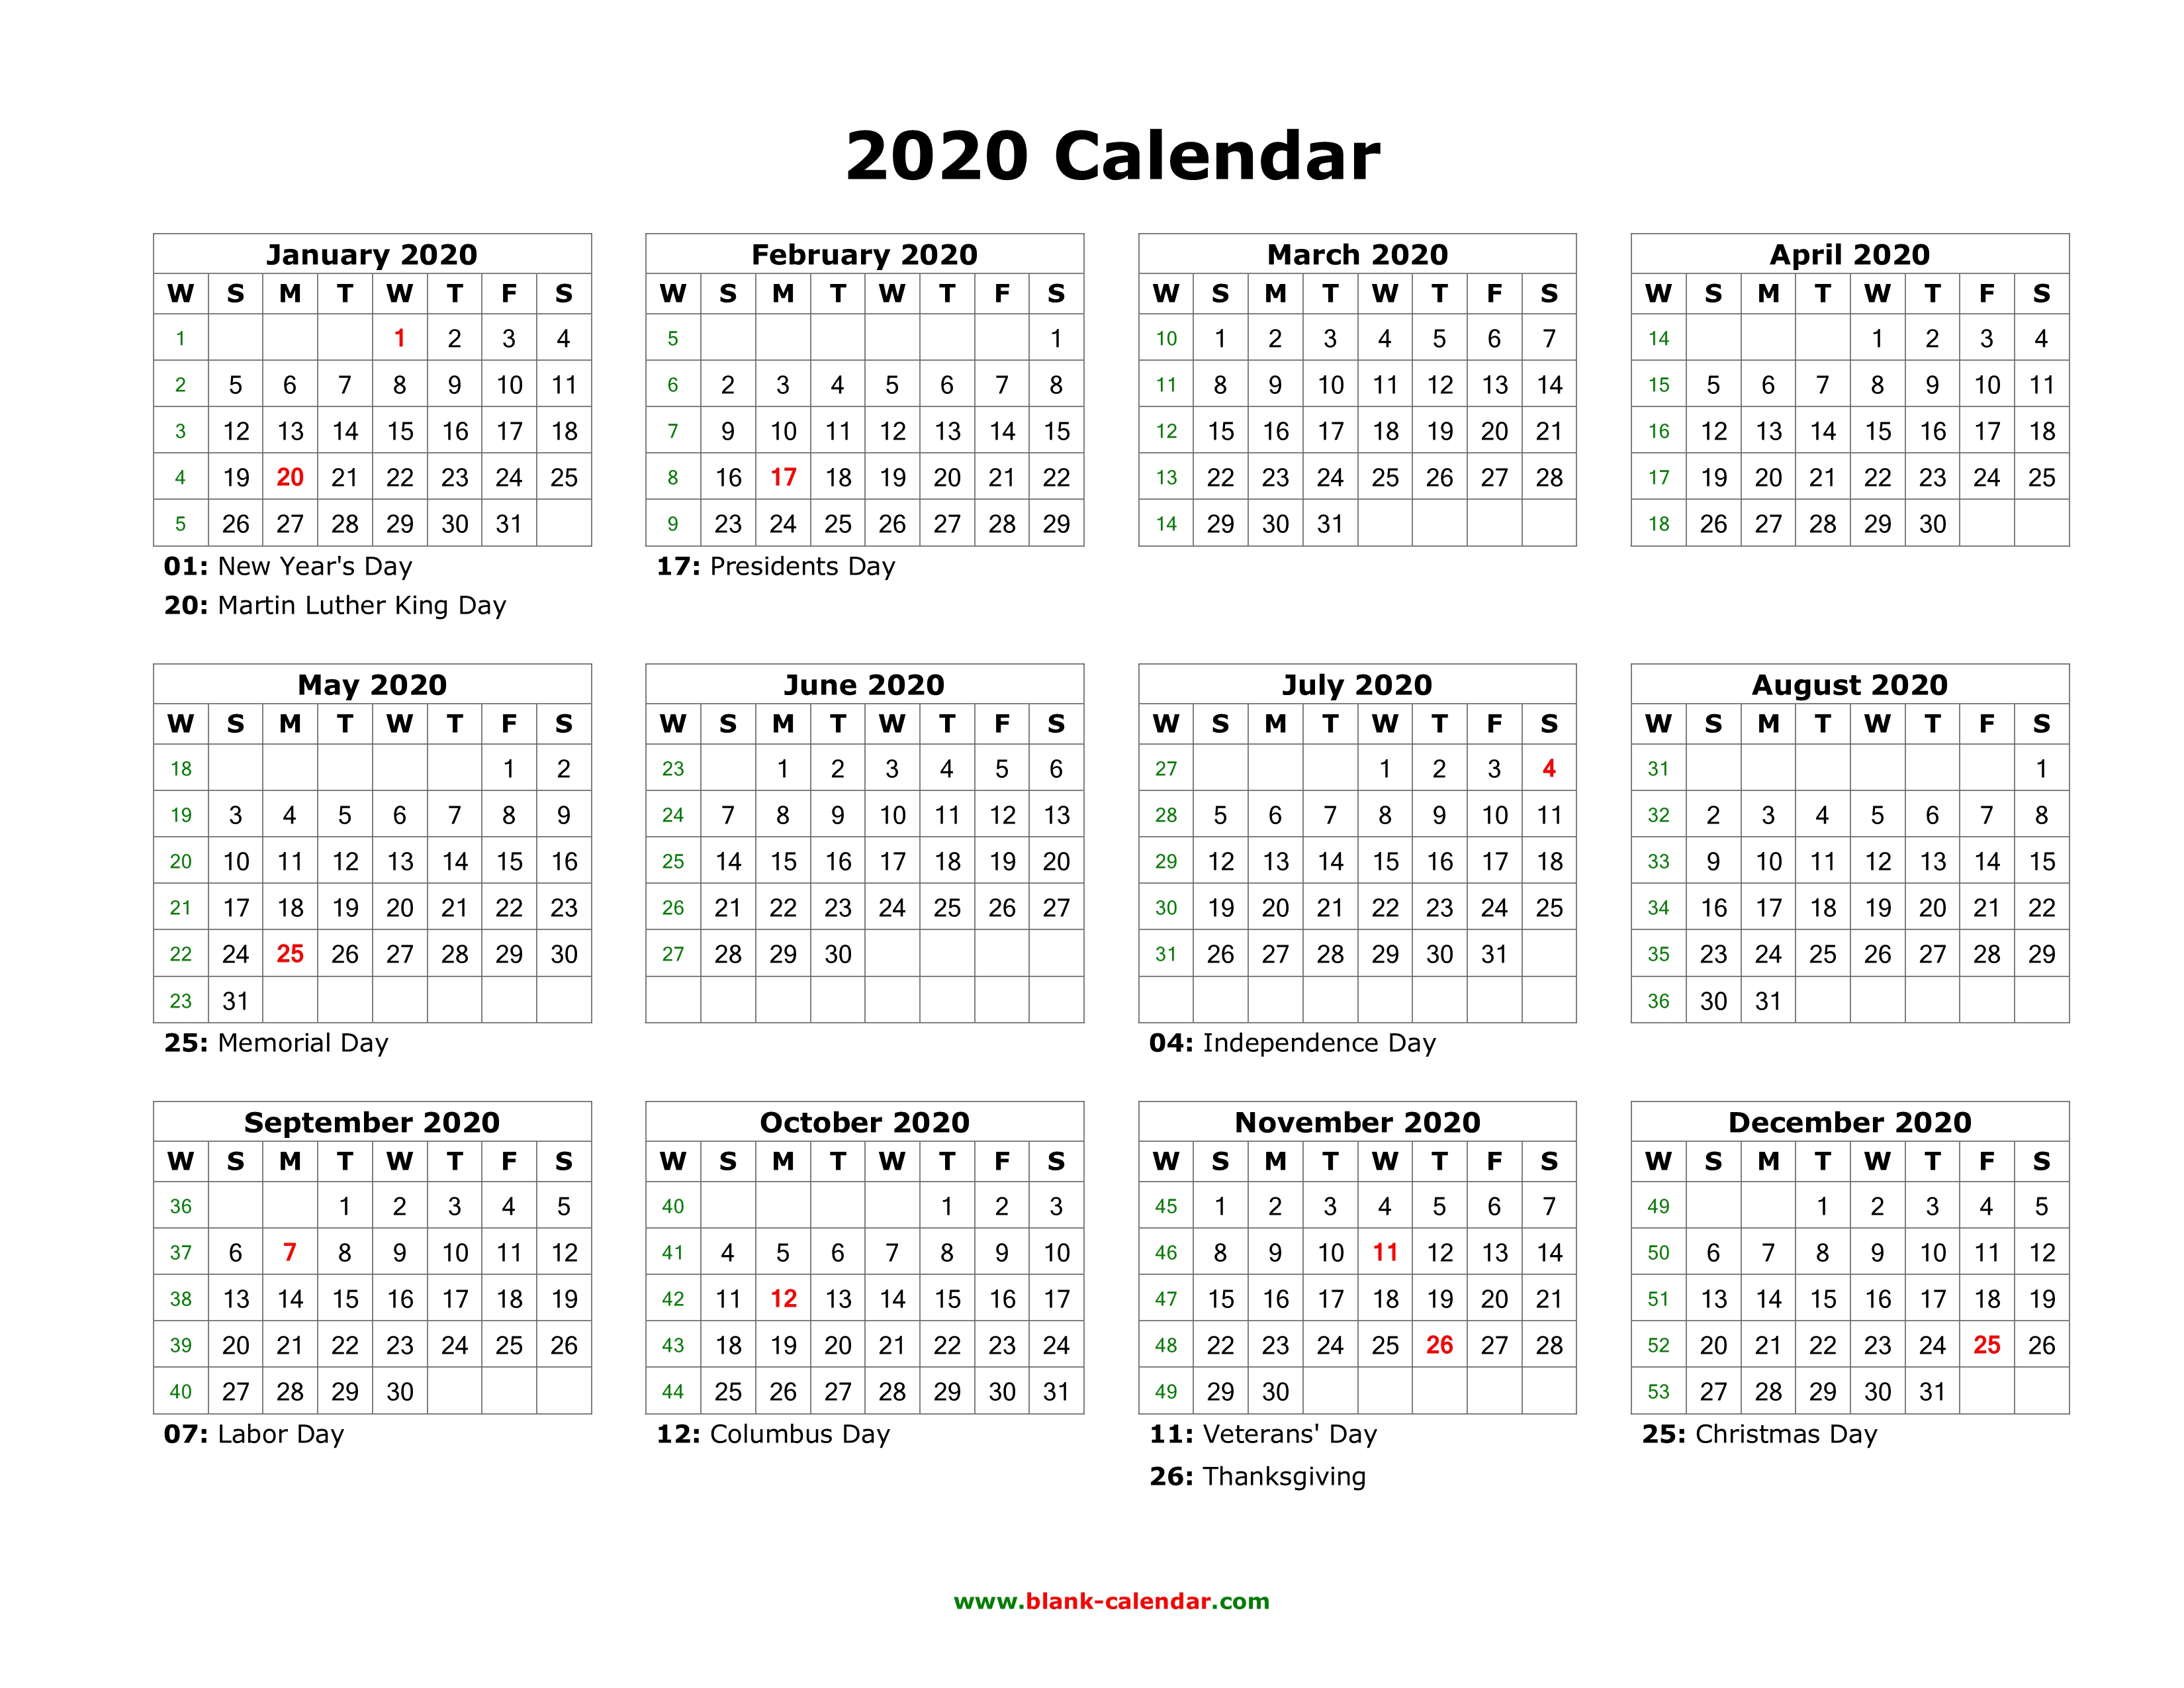 Blank Calendar 2020 | Free Download Calendar Templates pertaining to Free Printable Fill In Calendars 2020